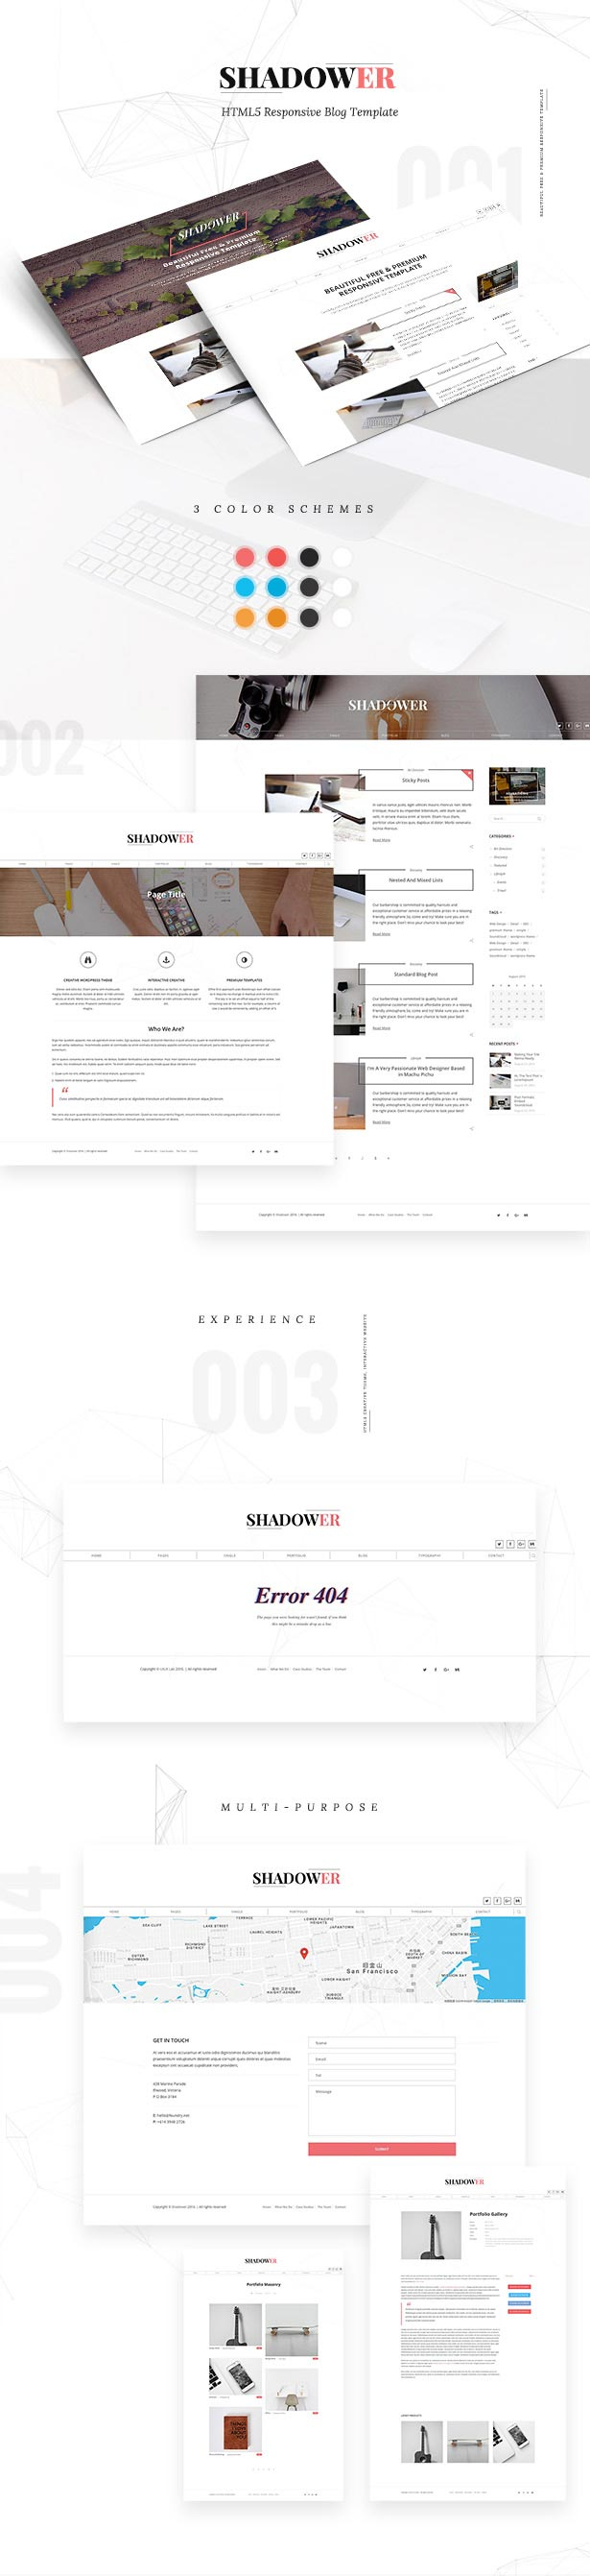 Shadower - HTML5 Responsive Blog Template - 1